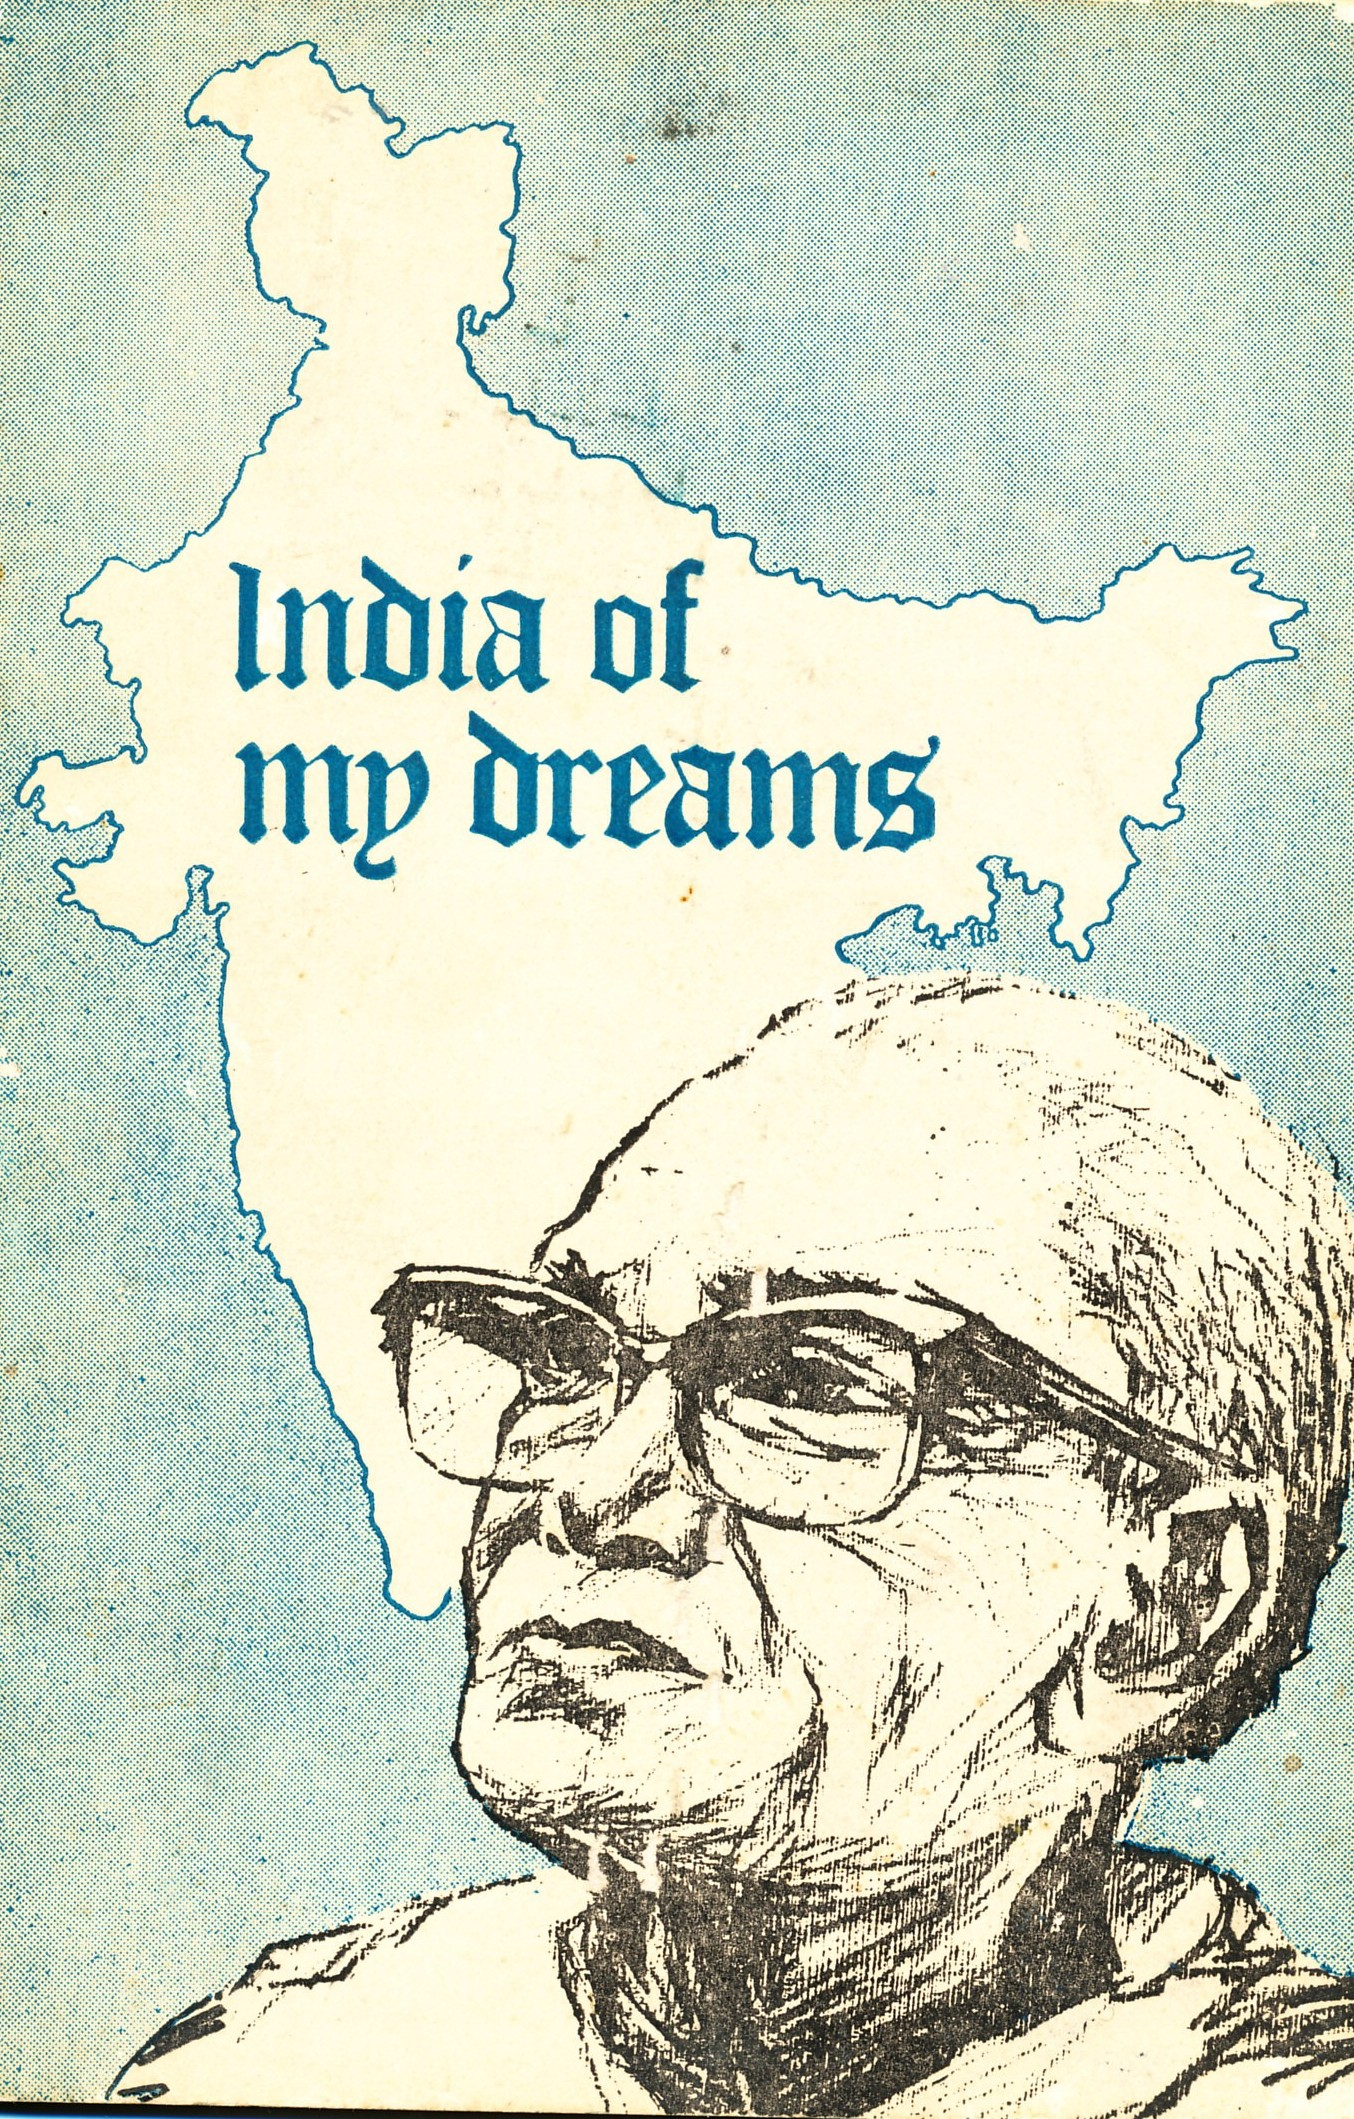 Essay-writing contest- 'India of my dreams'